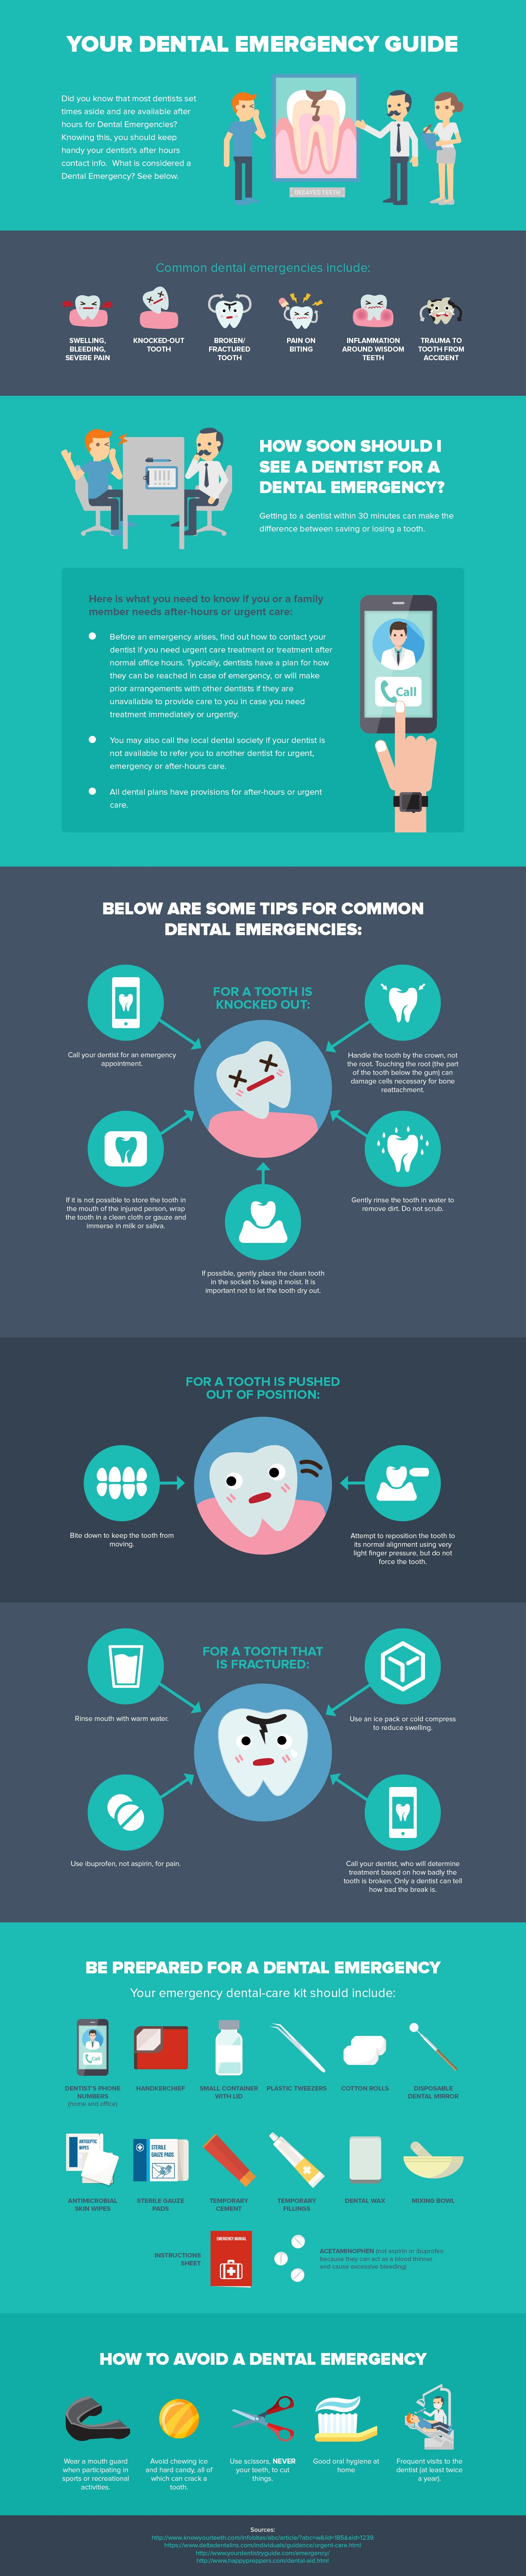 Dental Emergency infographic high resolution.jpg